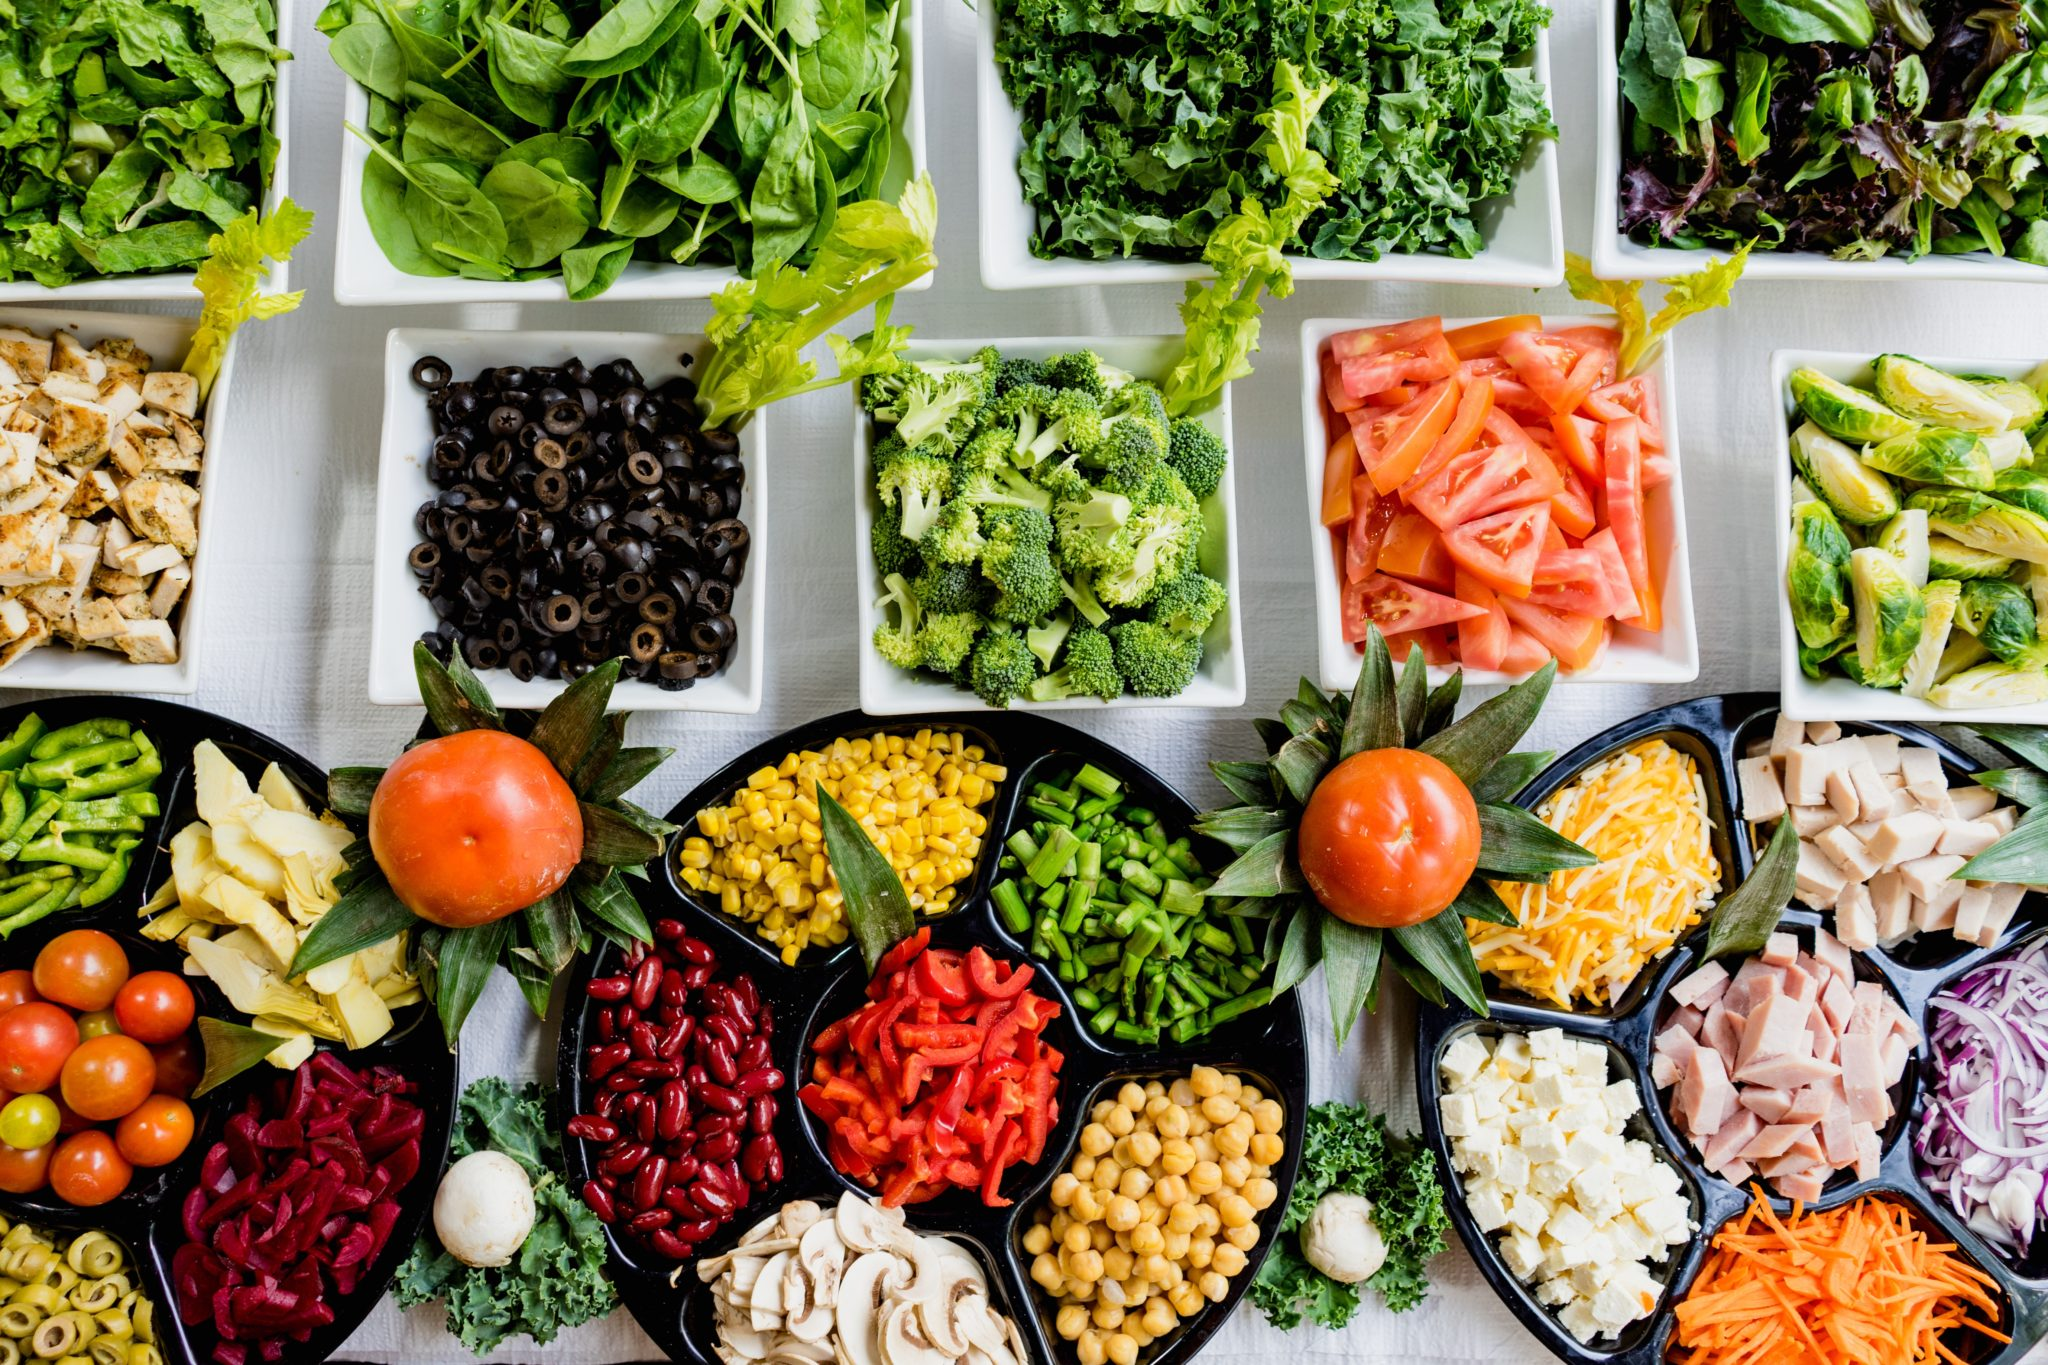 Eat more vegetables by thinking outside the salad bowl